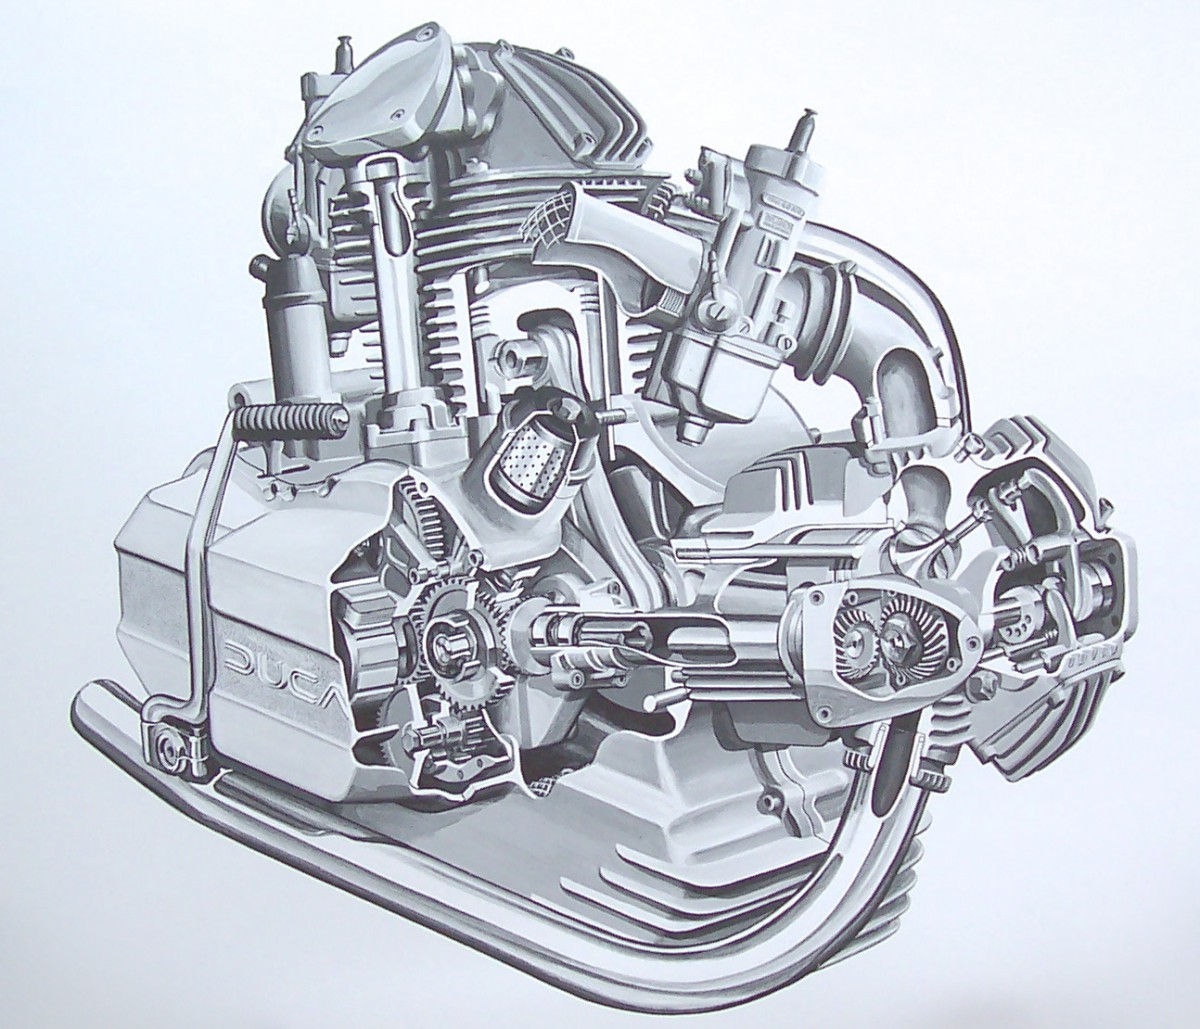 V8 Engine Drawing At Free For Personal Use Lexus Ls400 Diagram Sensor Additionally 2002 Rx300 Intake 1200x1029 Drawings Bambrick Studio